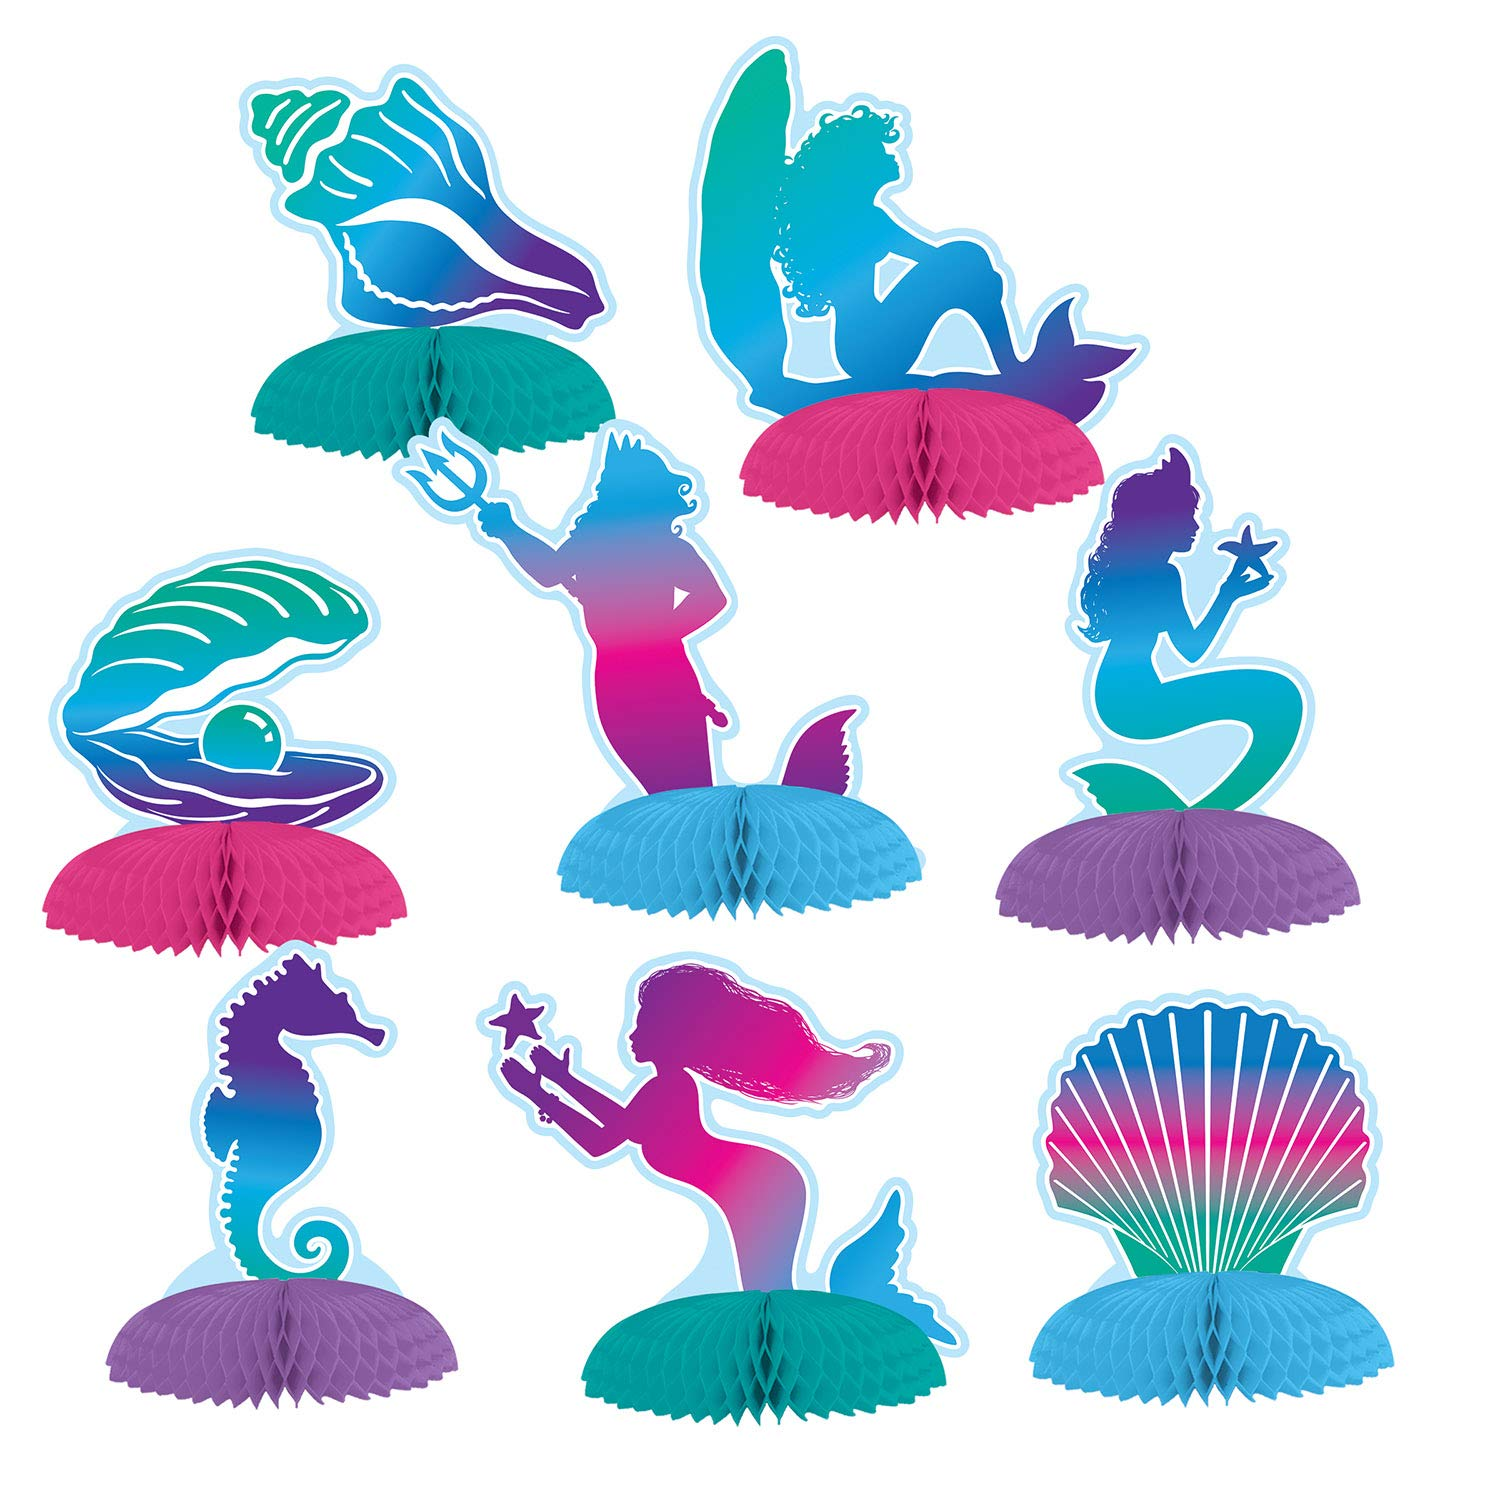 8Ct Mermaid Mini Tissue Centerpieces (Size: 3.6'' - 4.9'', Style: Mermaid, Pearl, Seashells, Starfish, Seahorses) Themed Party Table Decorations